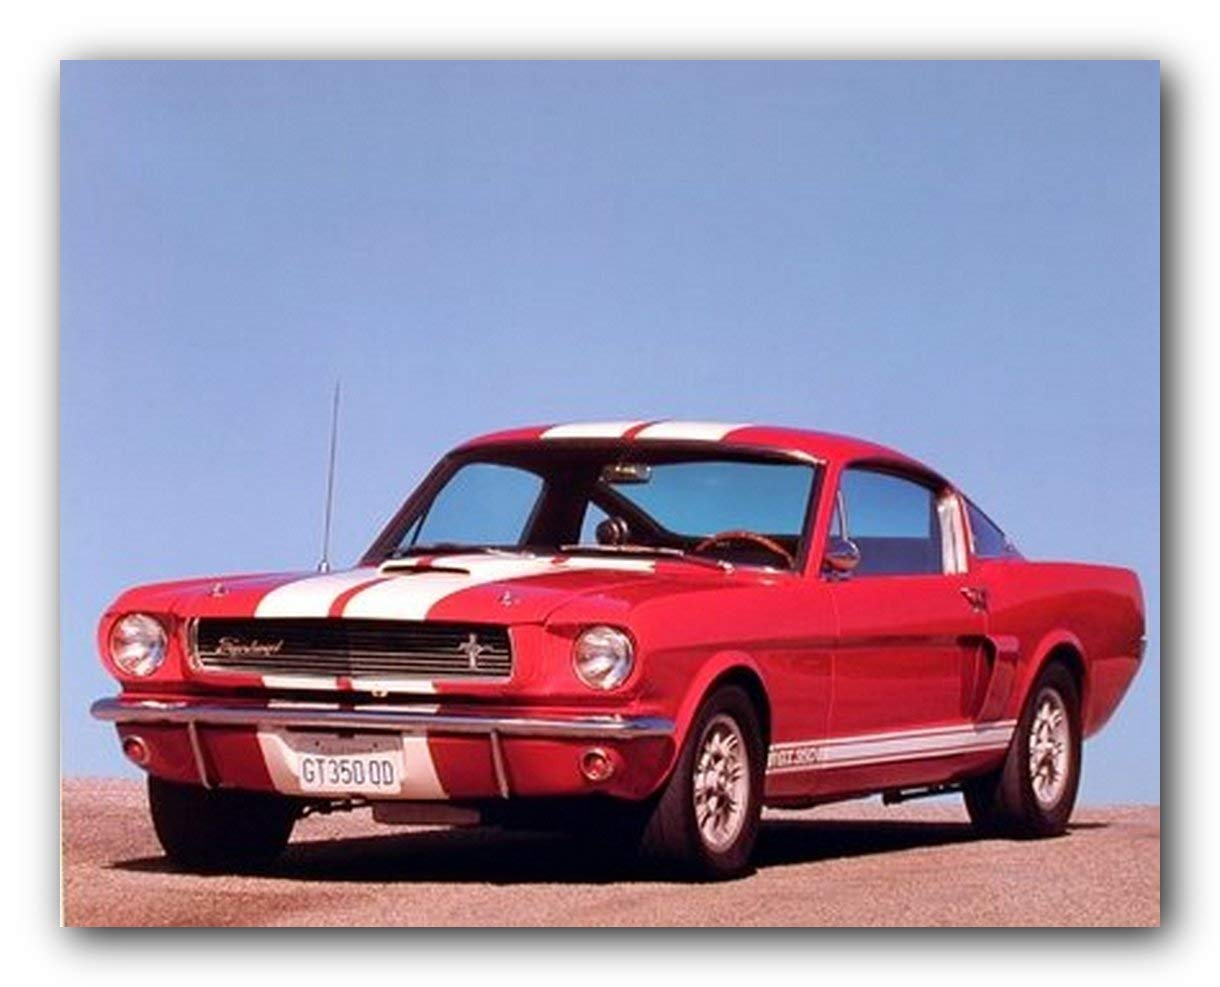 Amazon com 1966 red ford shelby gt 350 mustang vintage car art print poster 16x20 classic mustang poster posters prints